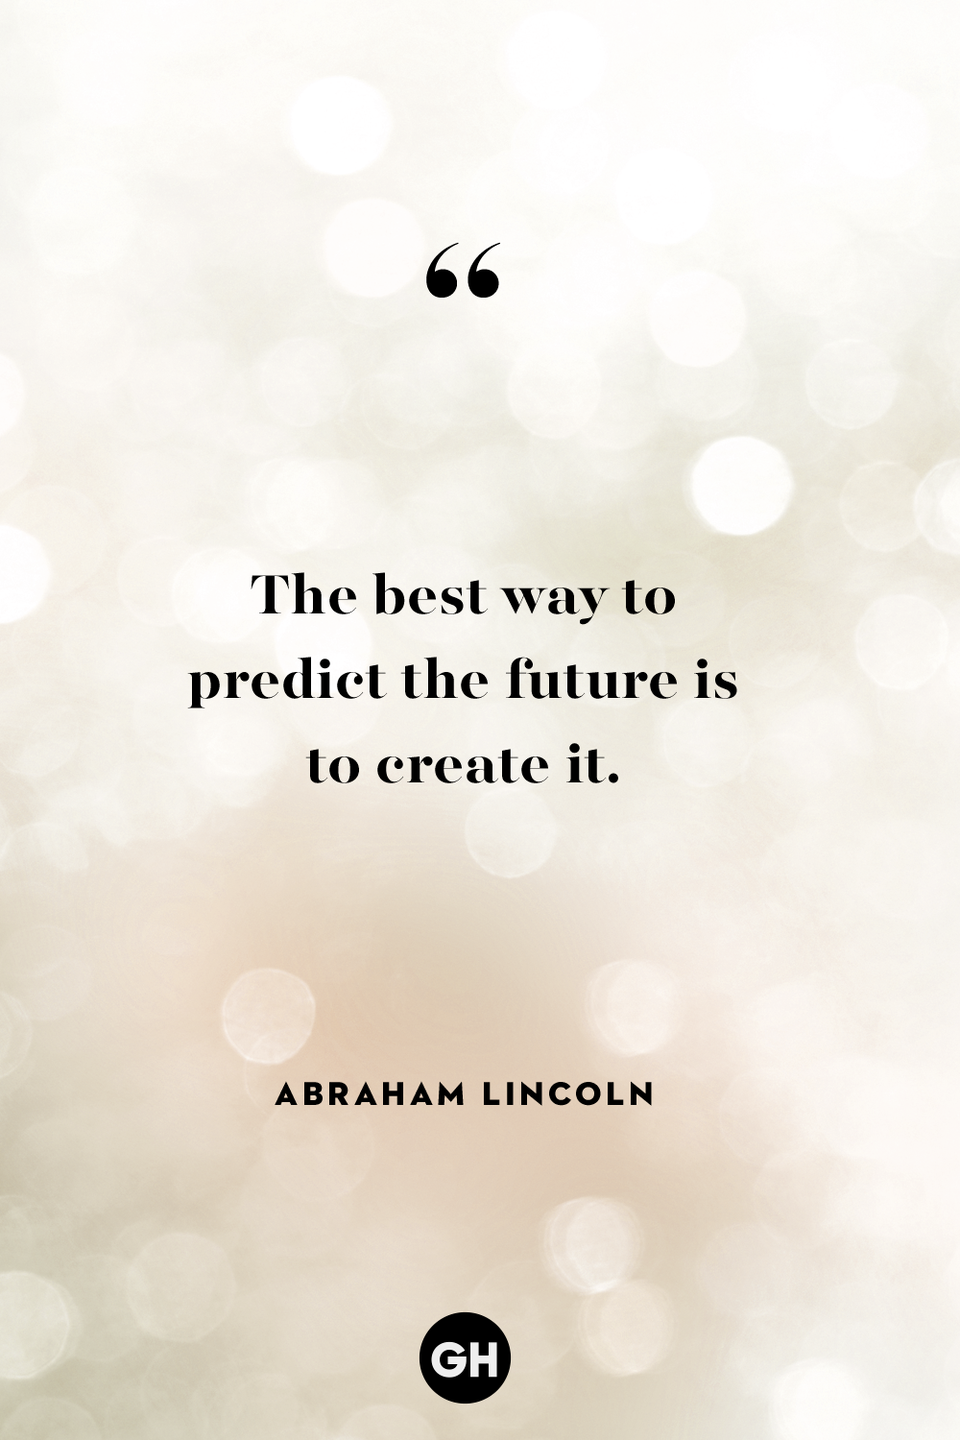 <p>The best way to predict the future is to create it.</p>